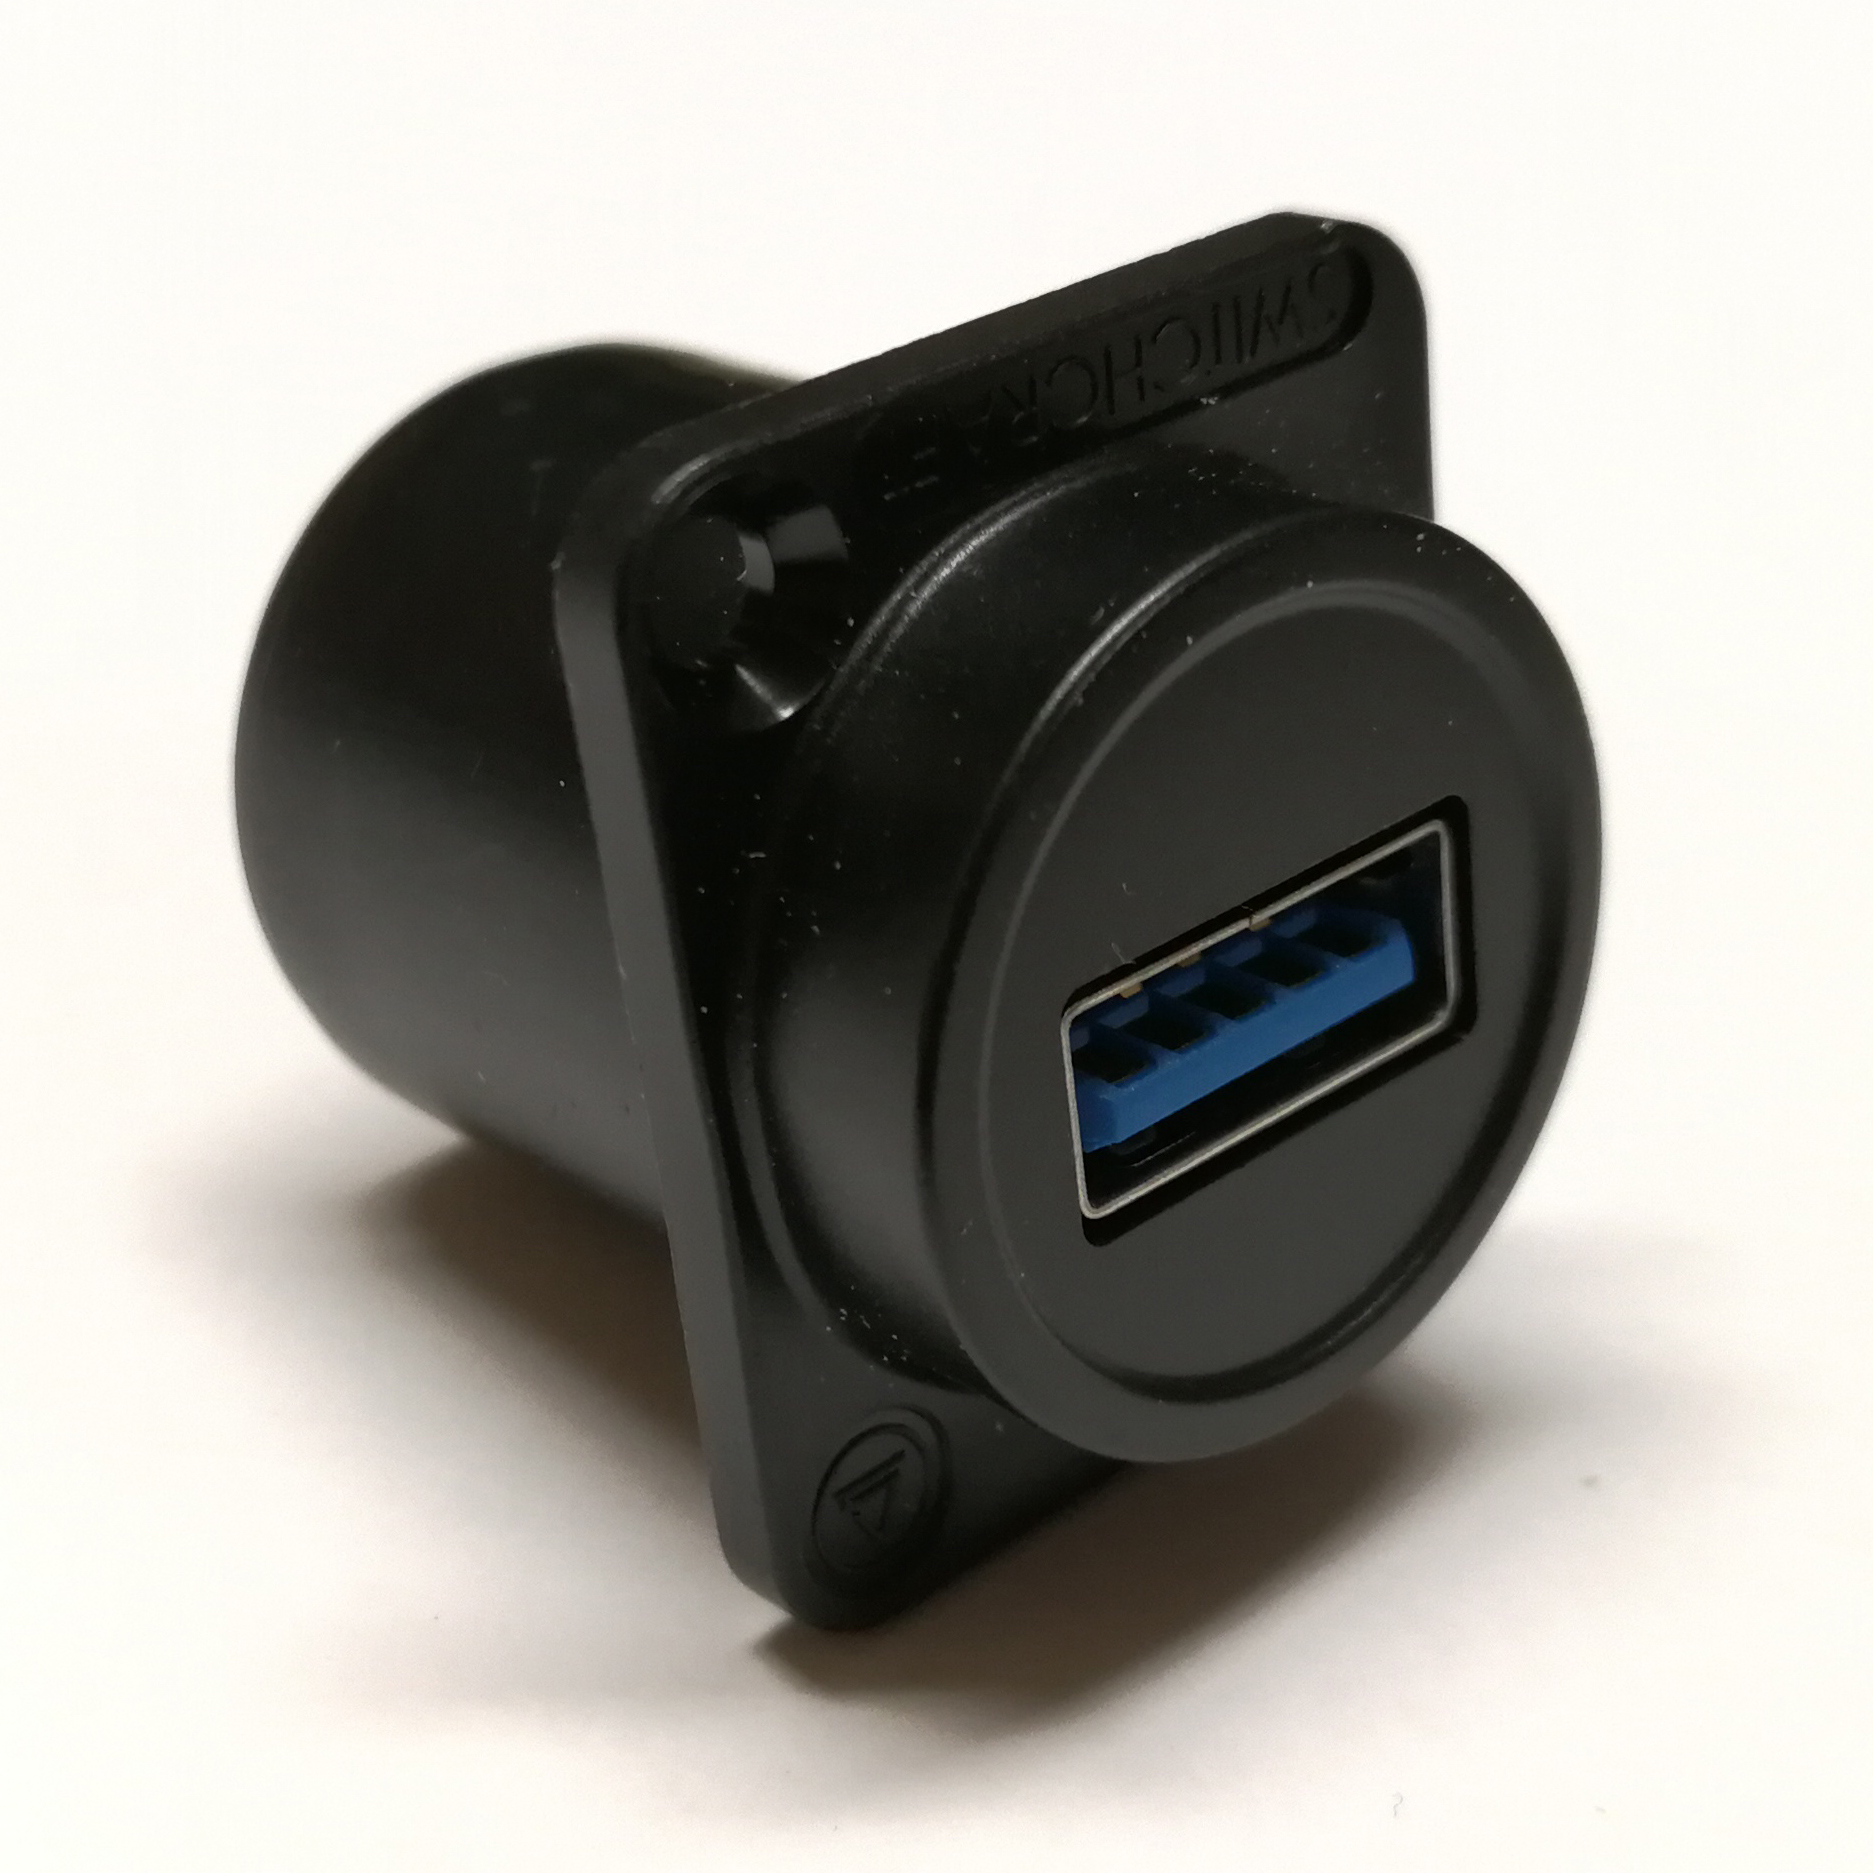 Switchcraft EH-serie USB A 3.0 – Micro USB 3.0